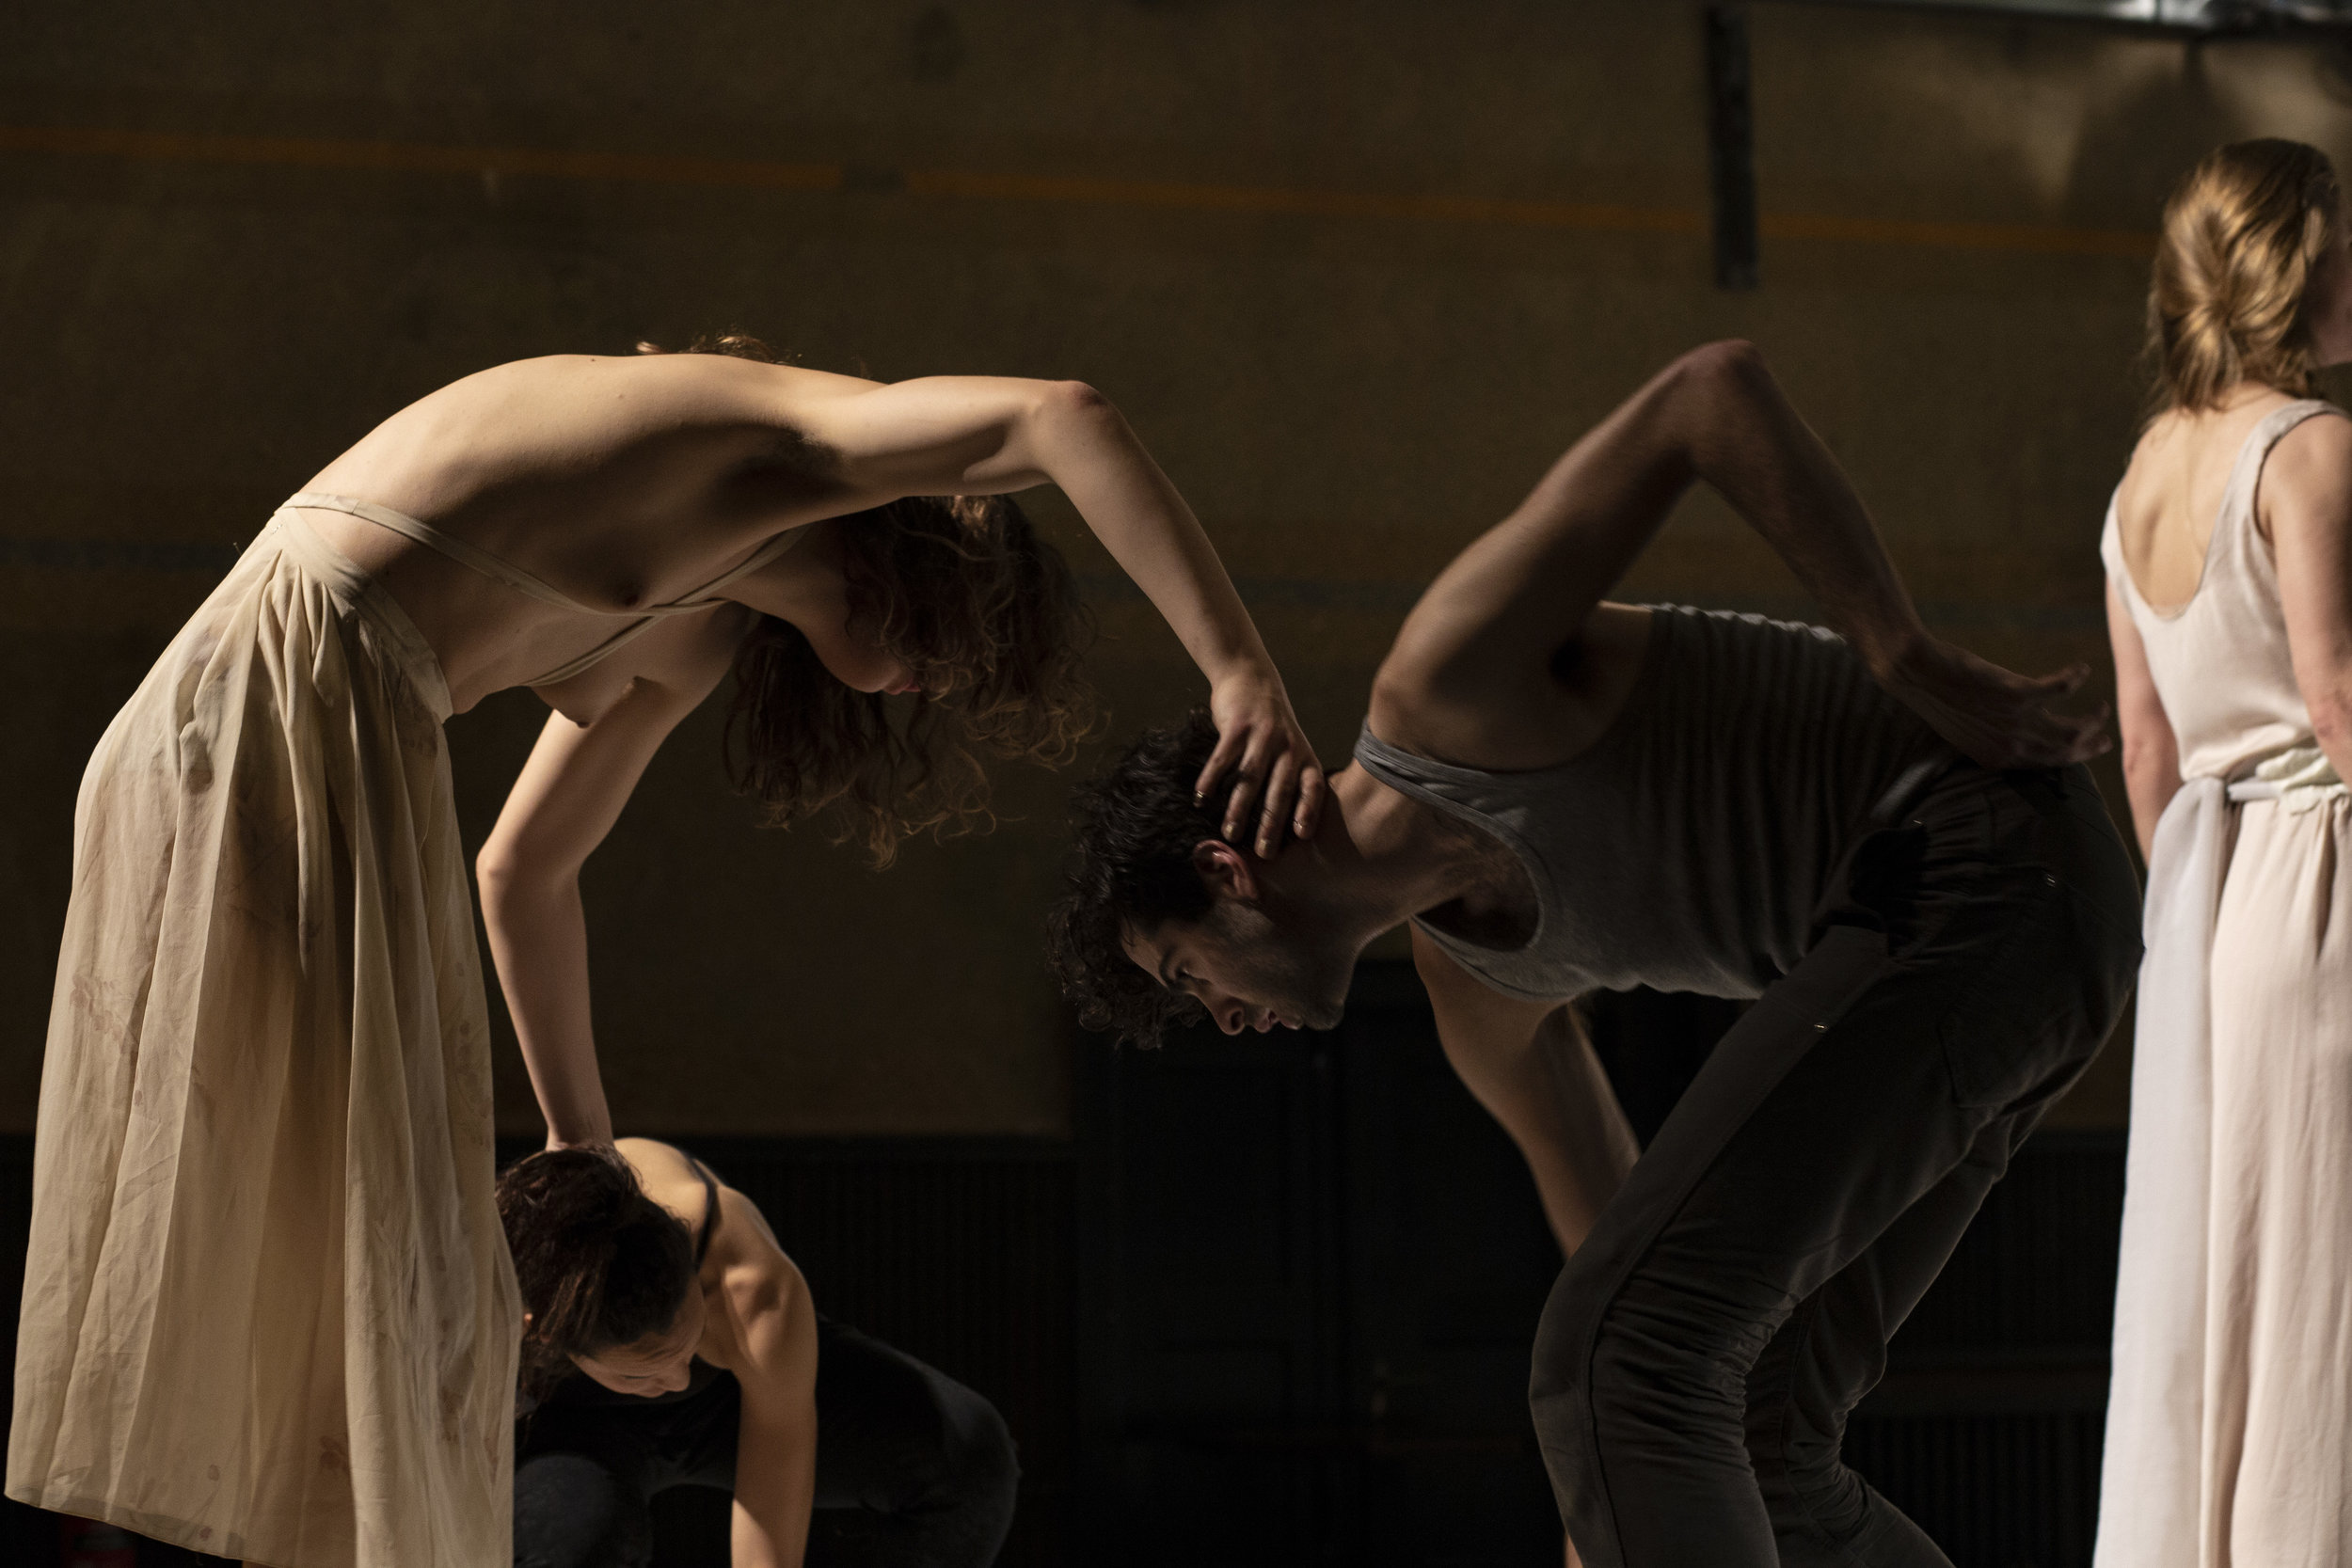 9. Salome Kießling, Salber Williams, Christopher Adams-Cohen, Carolin Ott (c) Bea Rodriquez.jpg